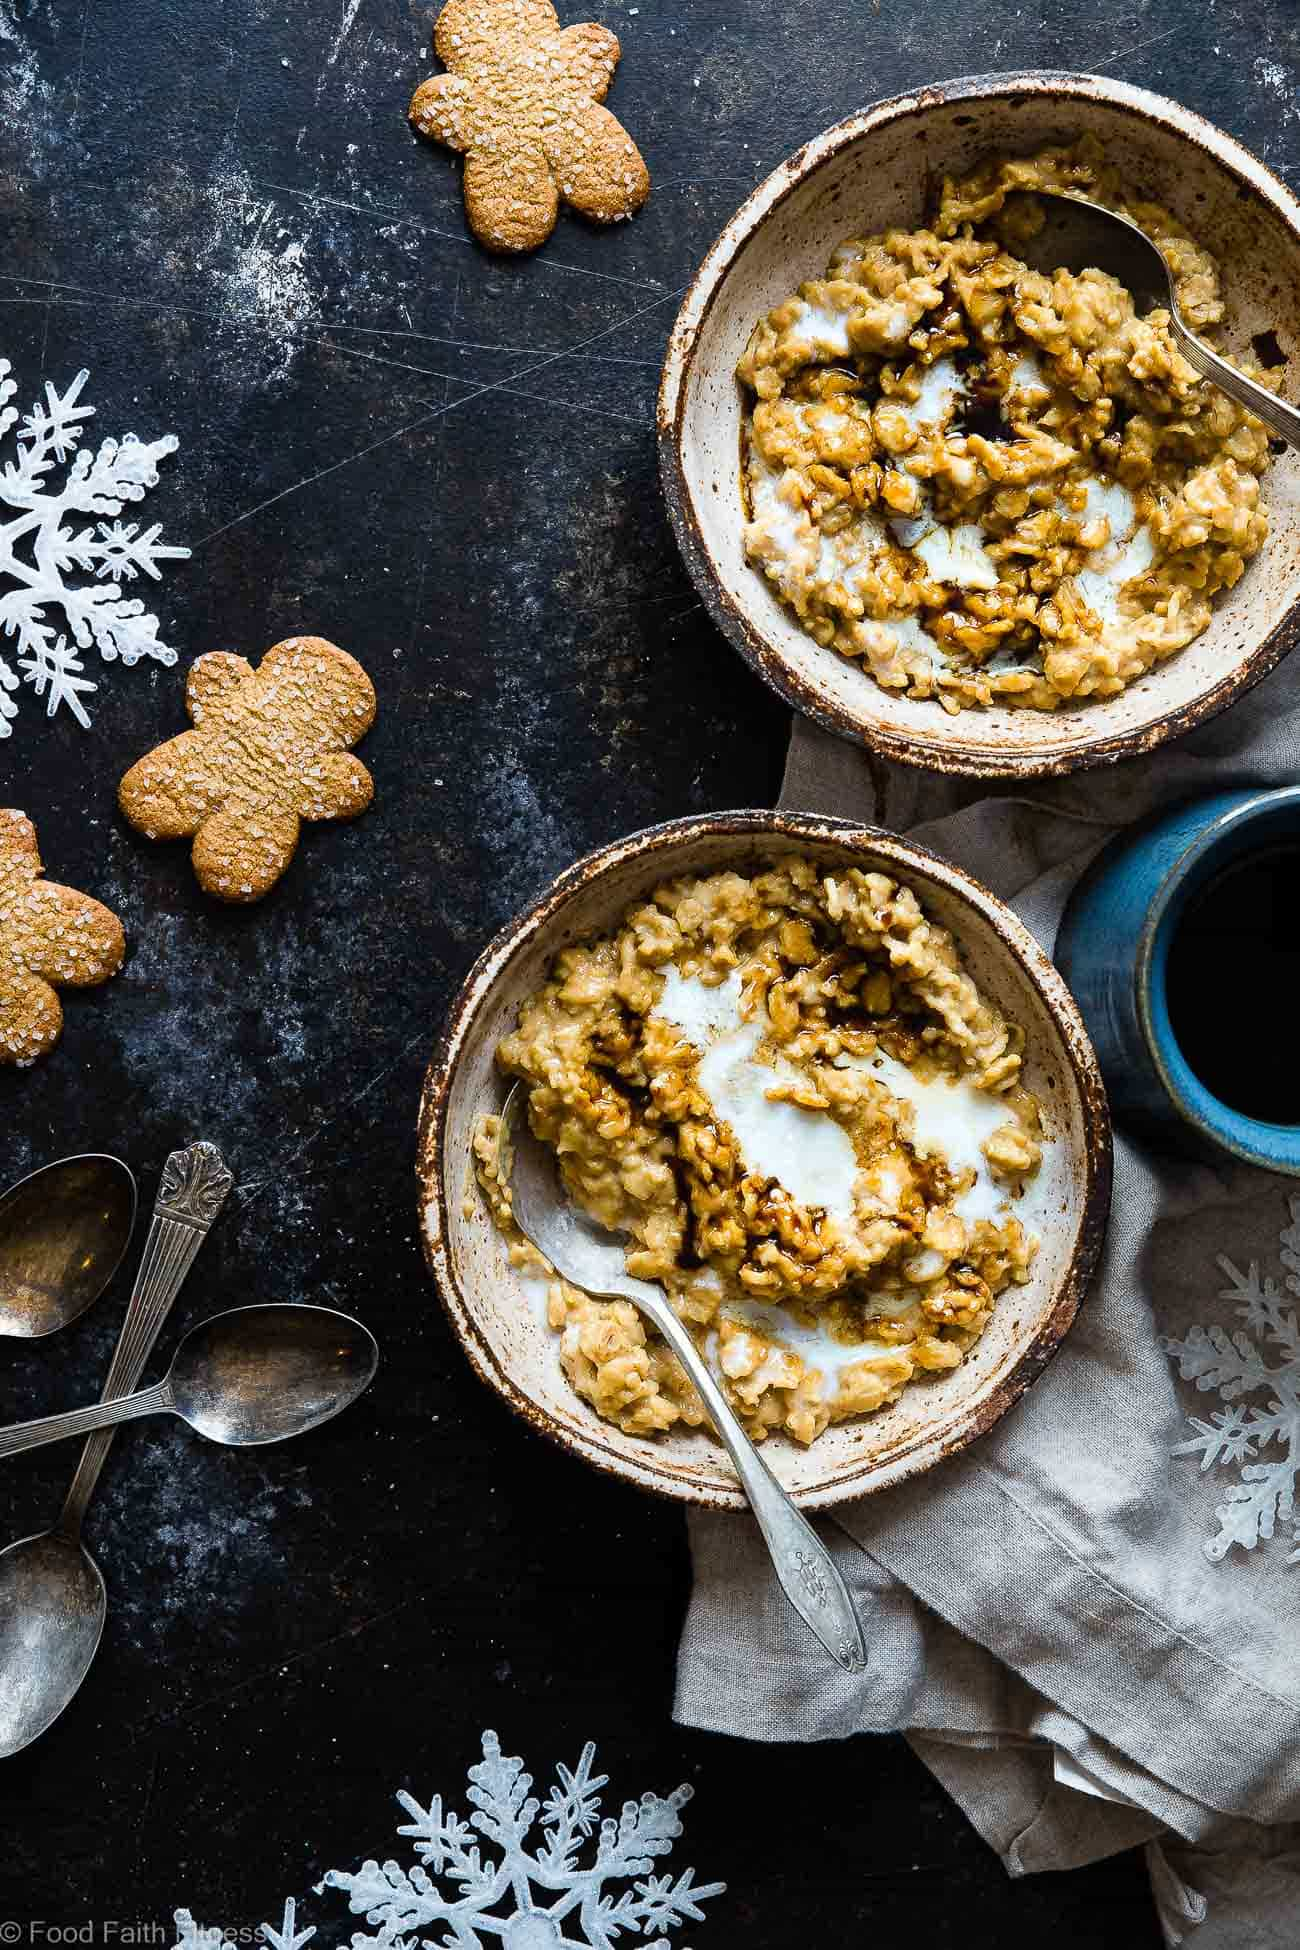 Gingerbread Healthy Protein Oatmeal - This quick and easy, high protein oatmeal tastes like waking up and eating a gingersnap cookie! It's a healthy, gluten free breakfast for kids and adults and it's ready in only 10 minutes! | Foodfaithfitness.com | @FoodFaithFit